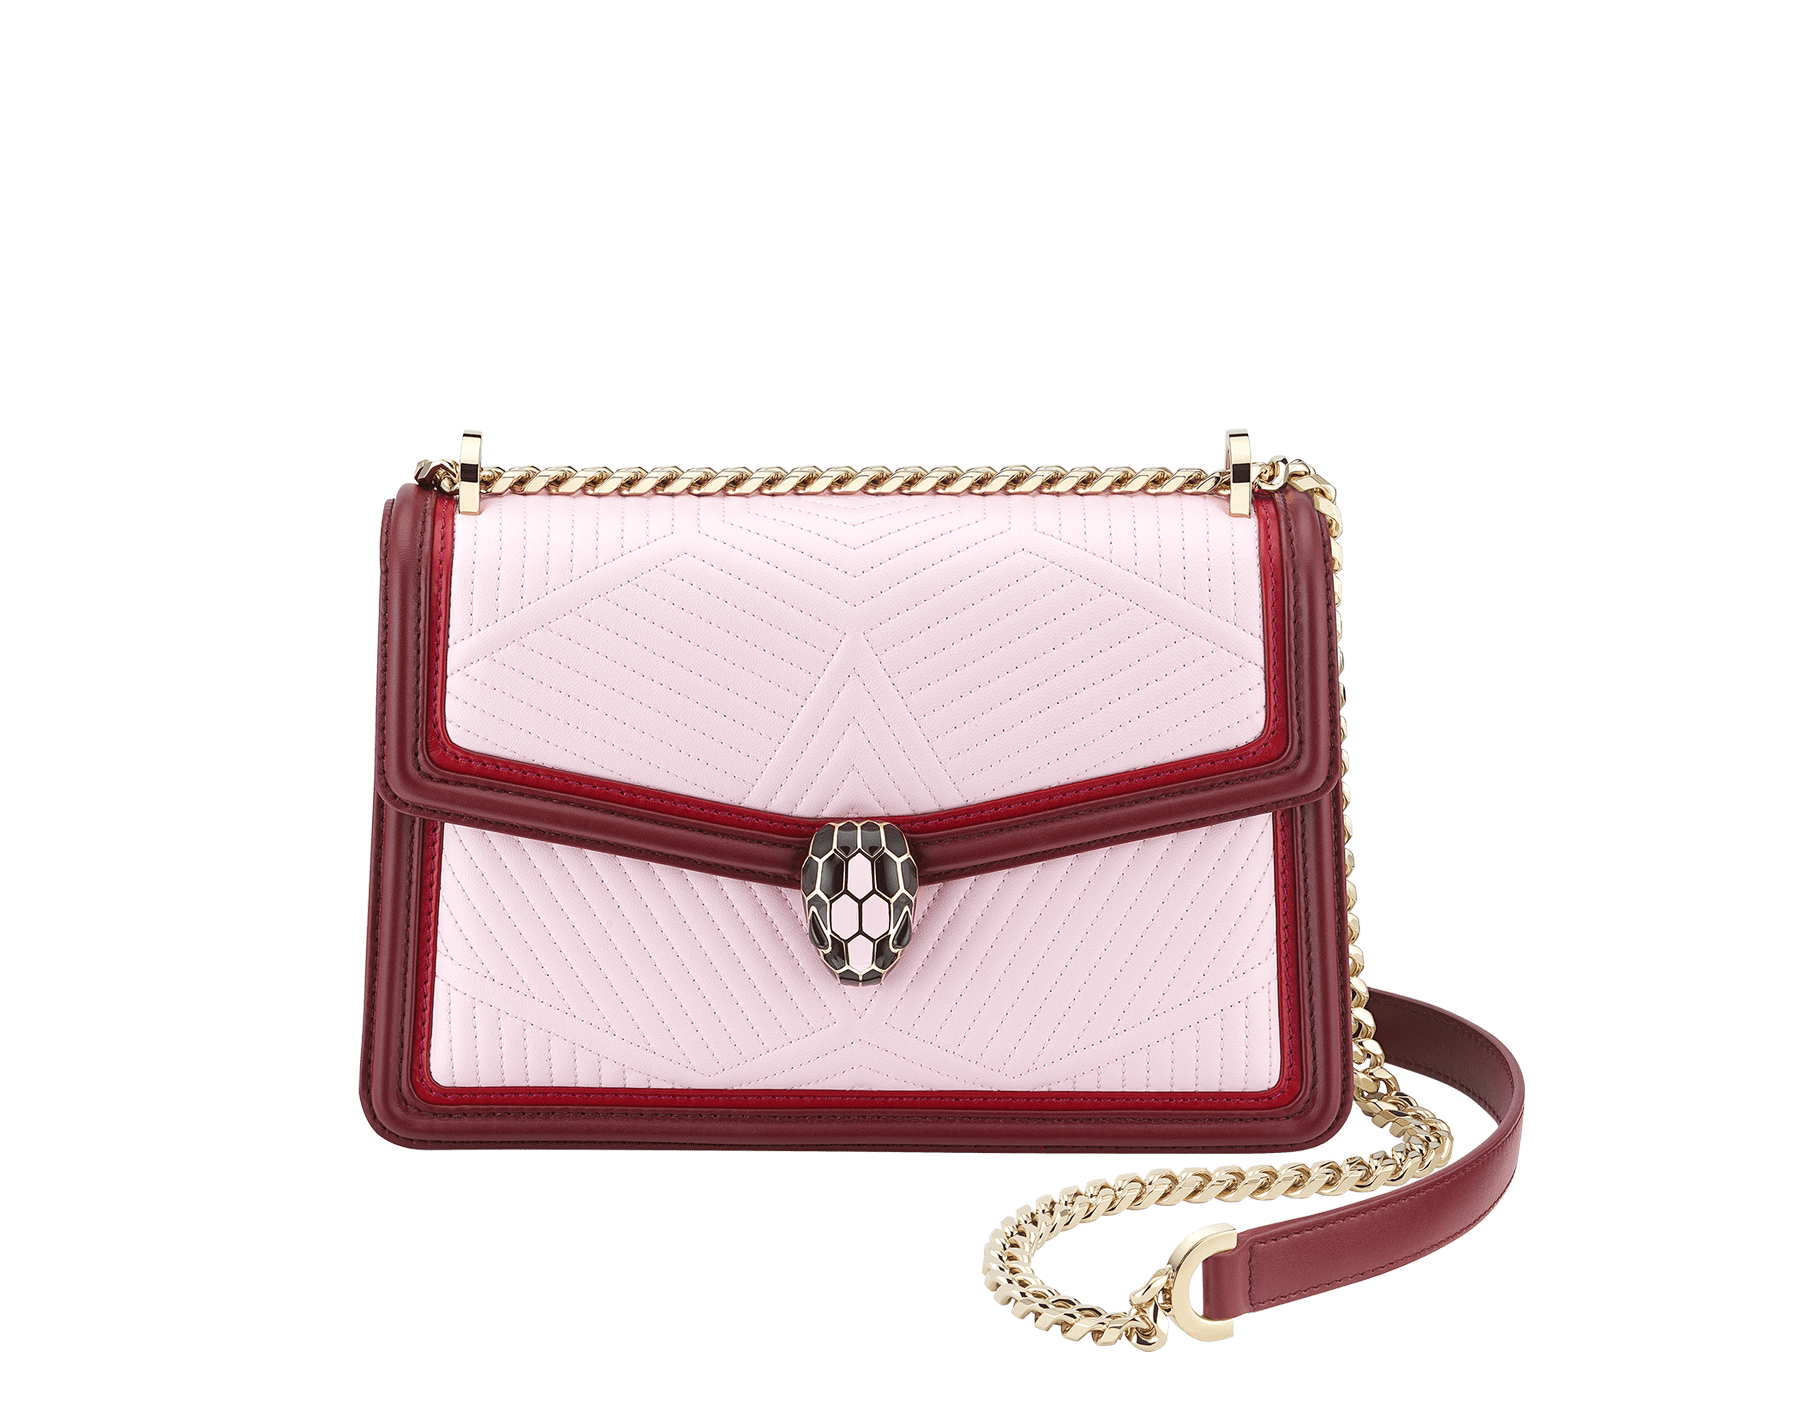 """Serpenti Diamond Blast"" shoulder bag in rosa di francia quilted calf leather and Roman garnet calf leather frames. Iconic snakehead closure in light gold plated brass enriched with black and rosa di francia enamel and black onyx eyes. 289462 image 1"